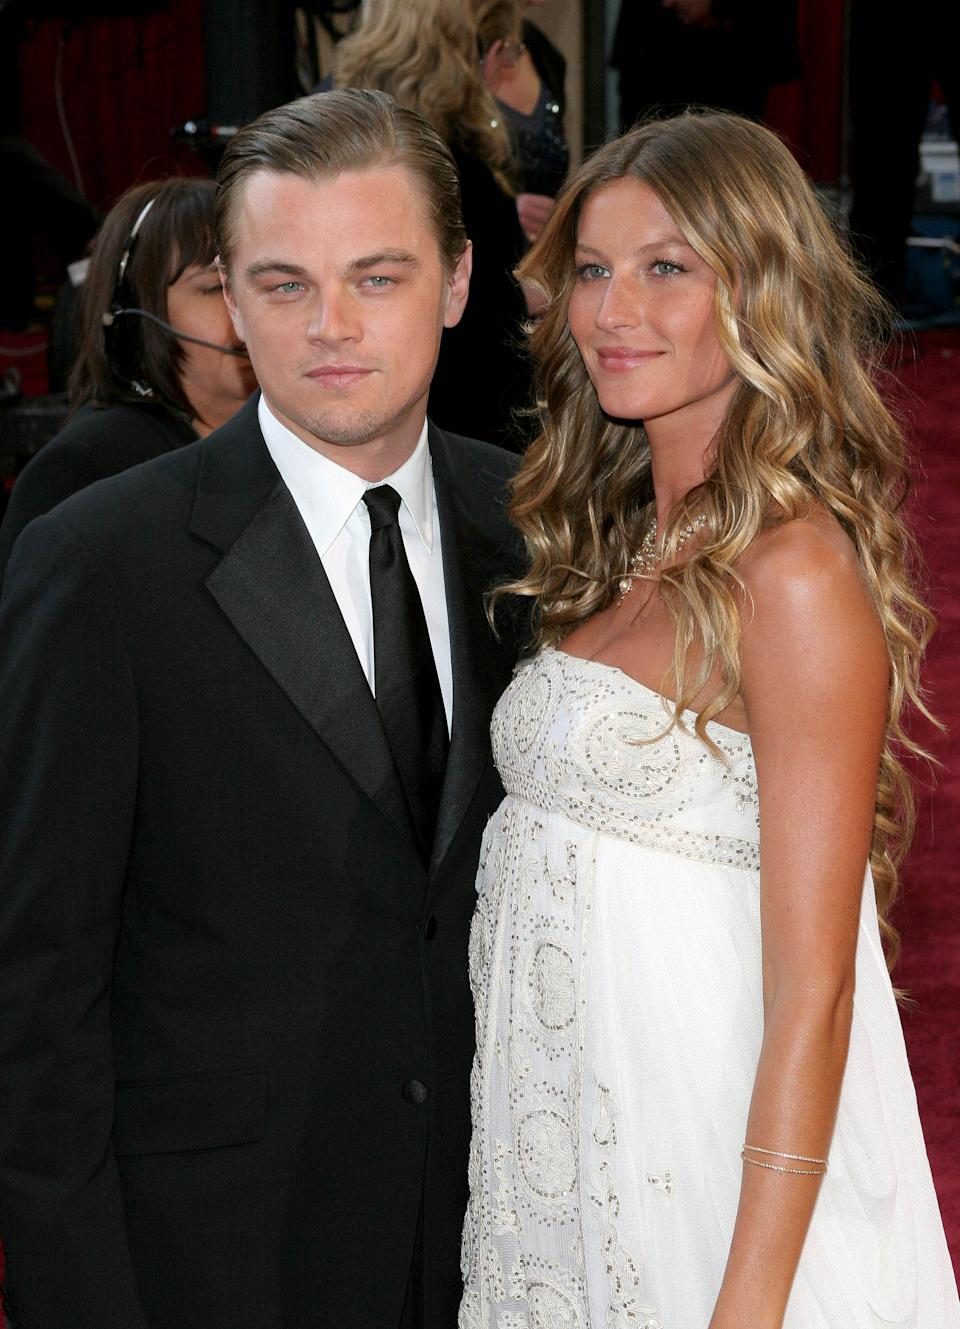 Photo by: Tim Goodwin/starmaxinc.com �2005 ALL RIGHTS RESERVED Telephone/Fax: (212) 995-1196 2/27/05 Leonardo DiCaprio and Gisele Bundchen at the 77th Annual Academy Awards (Oscars). (Hollywood, CA) (Star Max via AP Images)